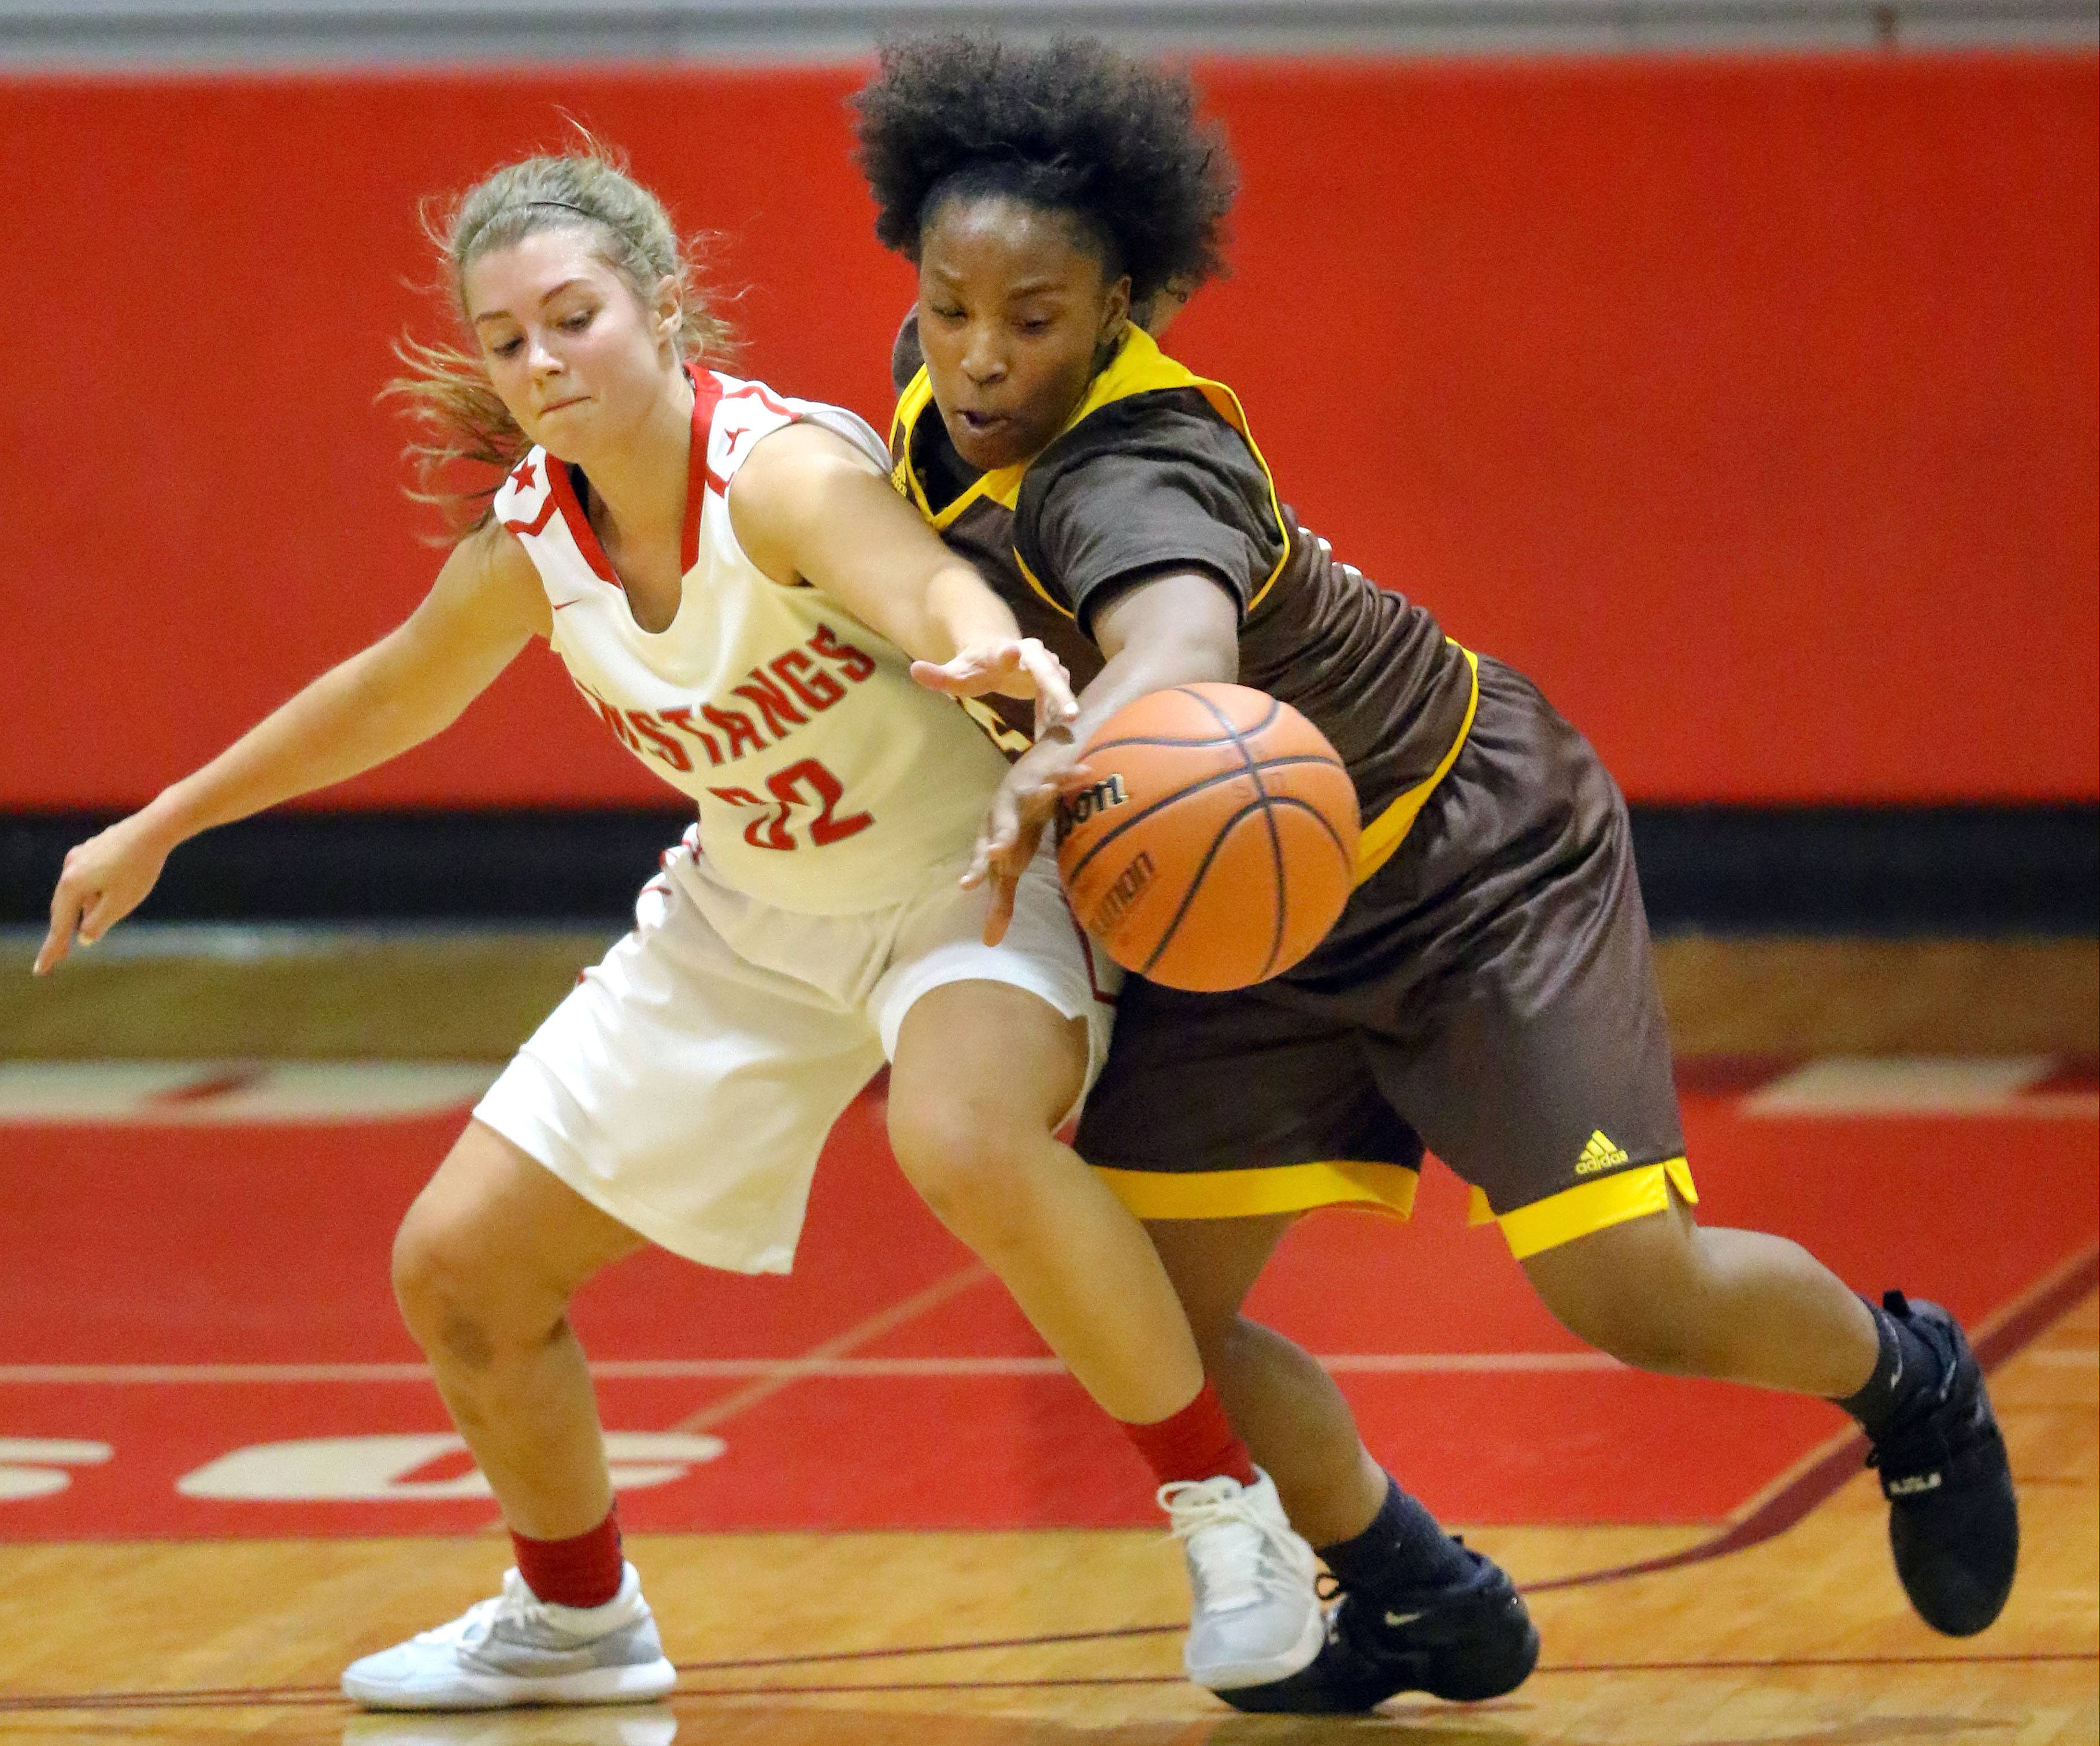 Mundelein's Kelsey Austwick, left, has the ball stolen by Carmel's Taryn Dwyer.